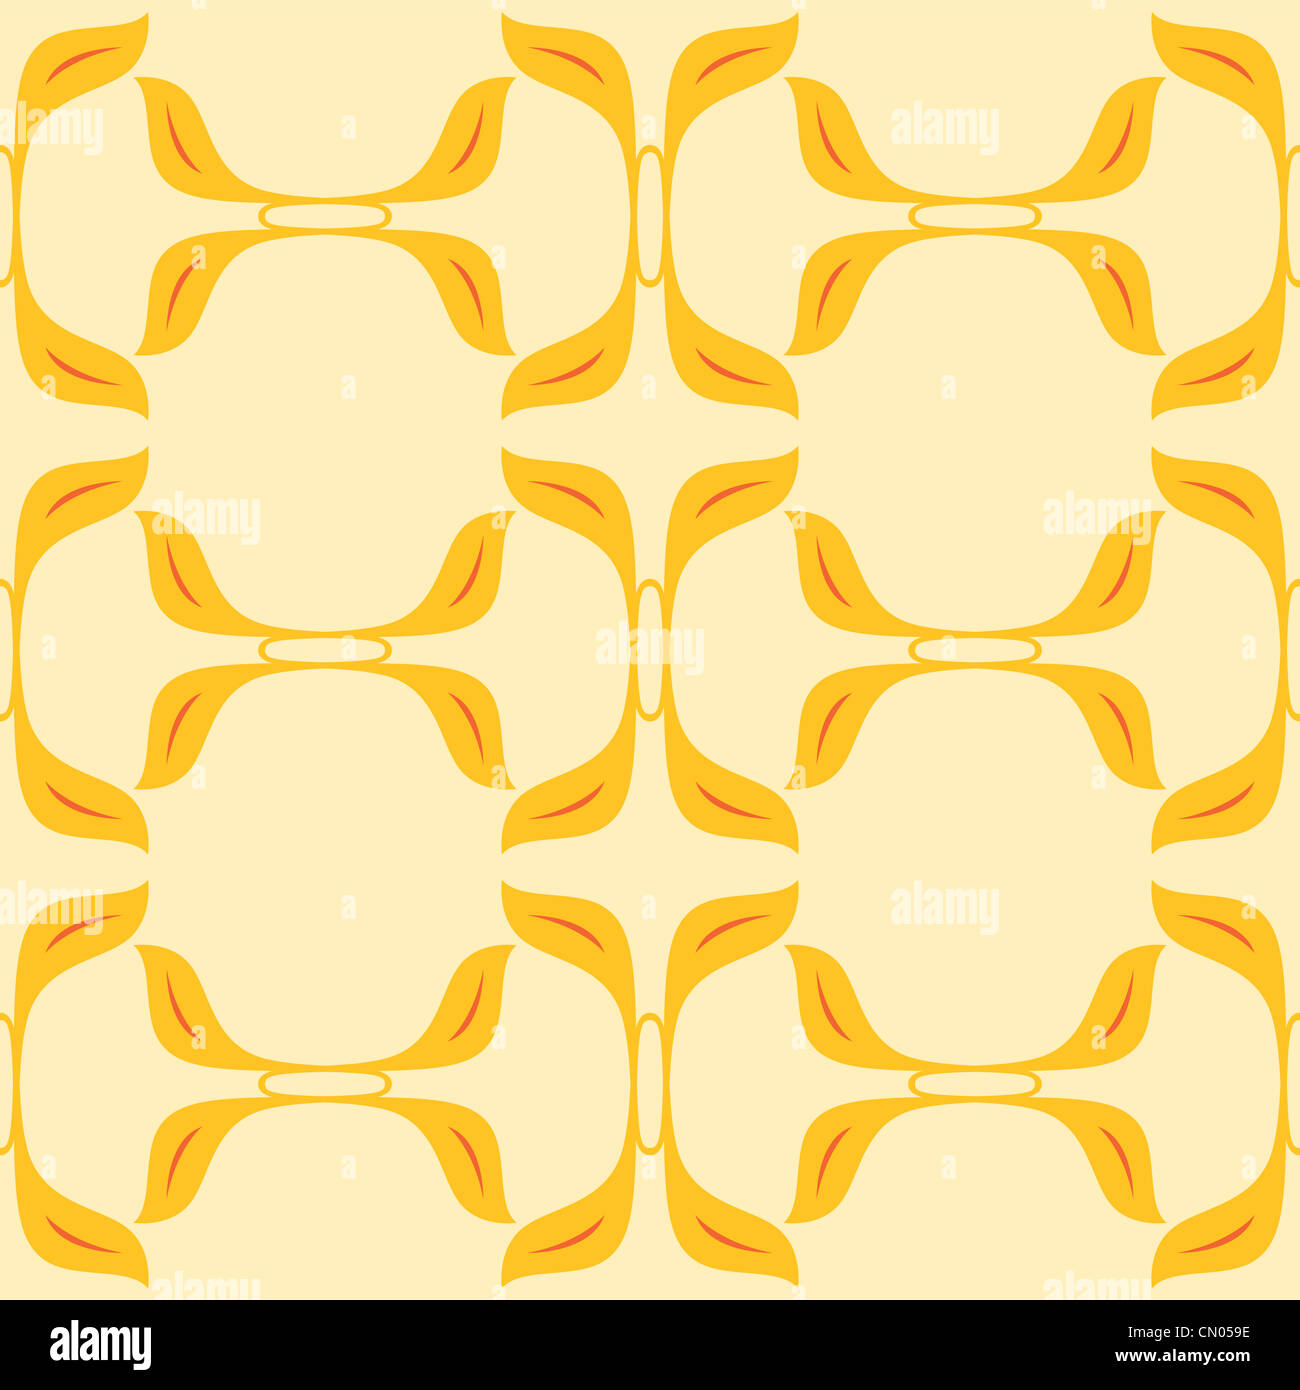 a seamless pattern design of organic shapes depicting garden trail